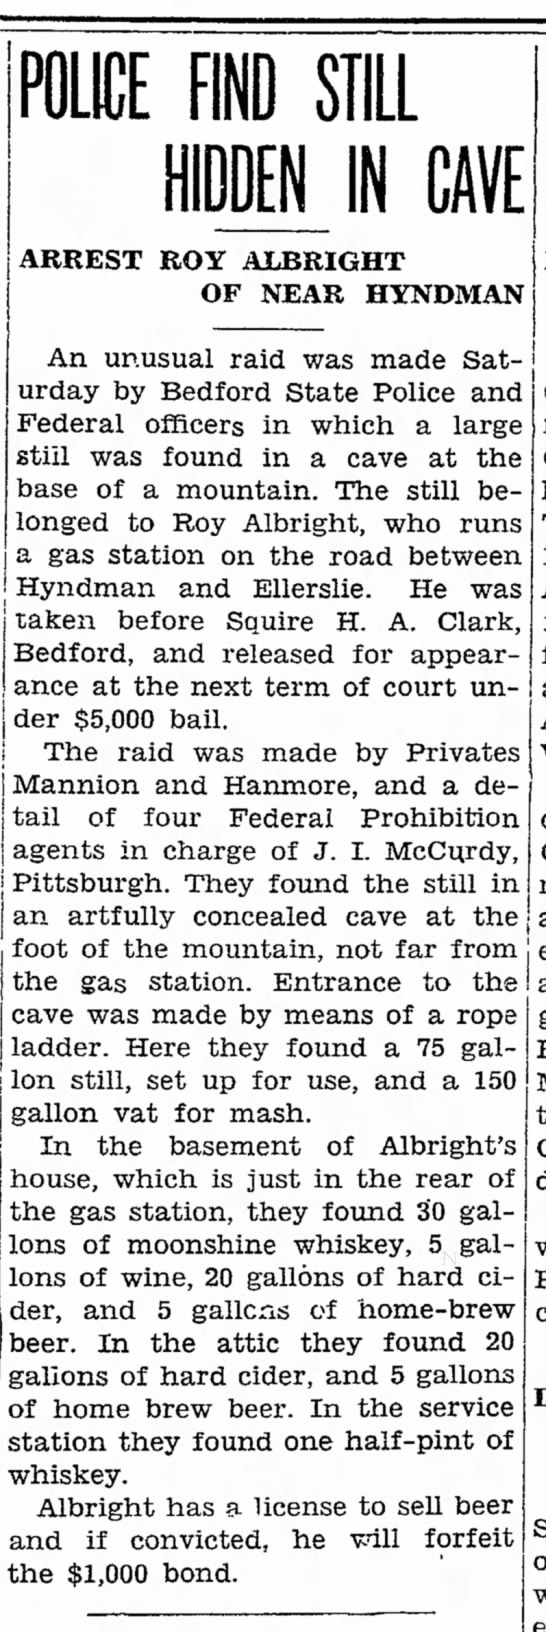 Match arrested?